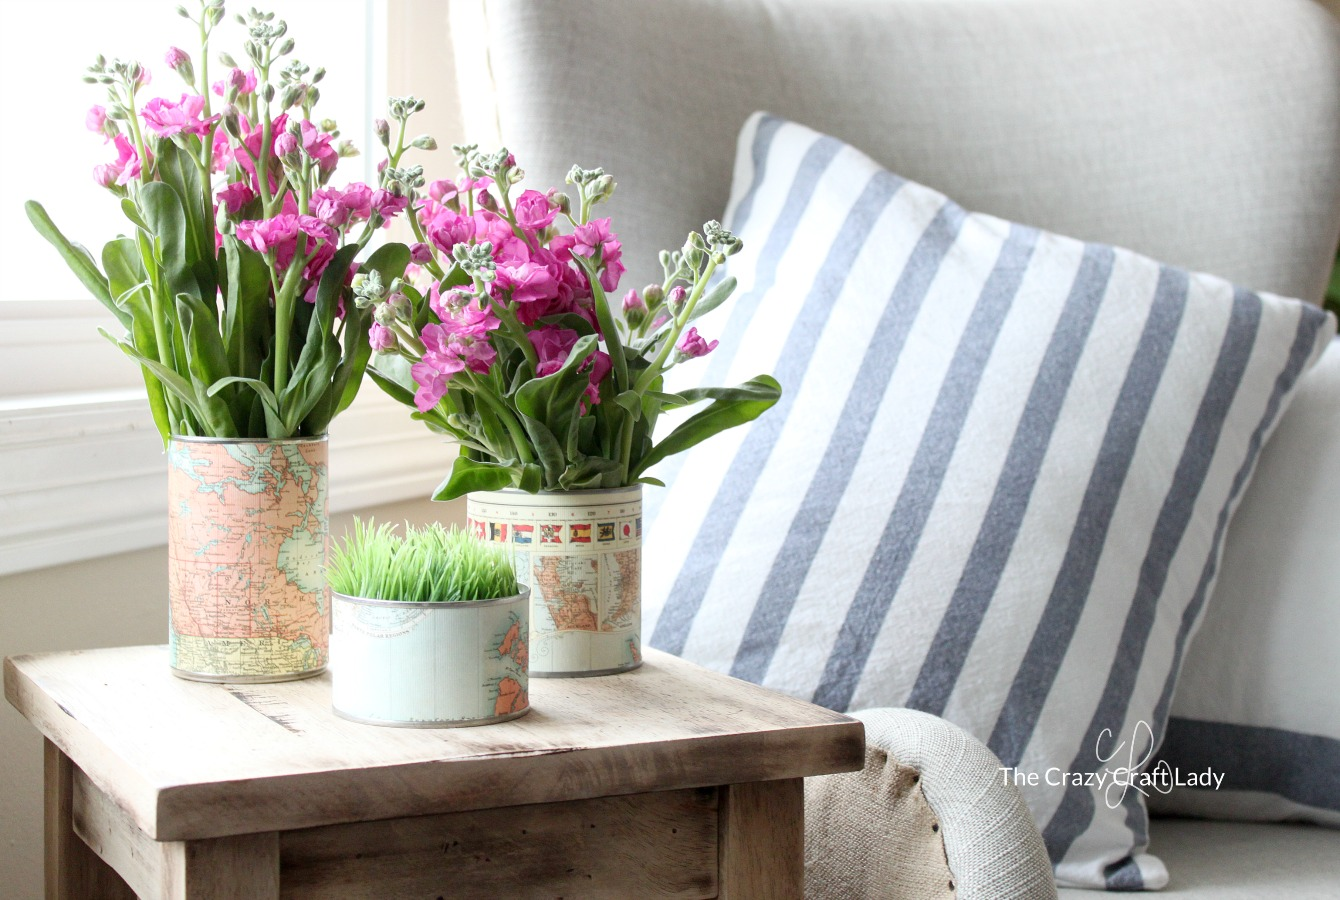 Try this upcycling craft and make tin can vases out of recycled cans and old maps. Use map paper to spruce up empty cans and make a beautiful floral centerpiece.